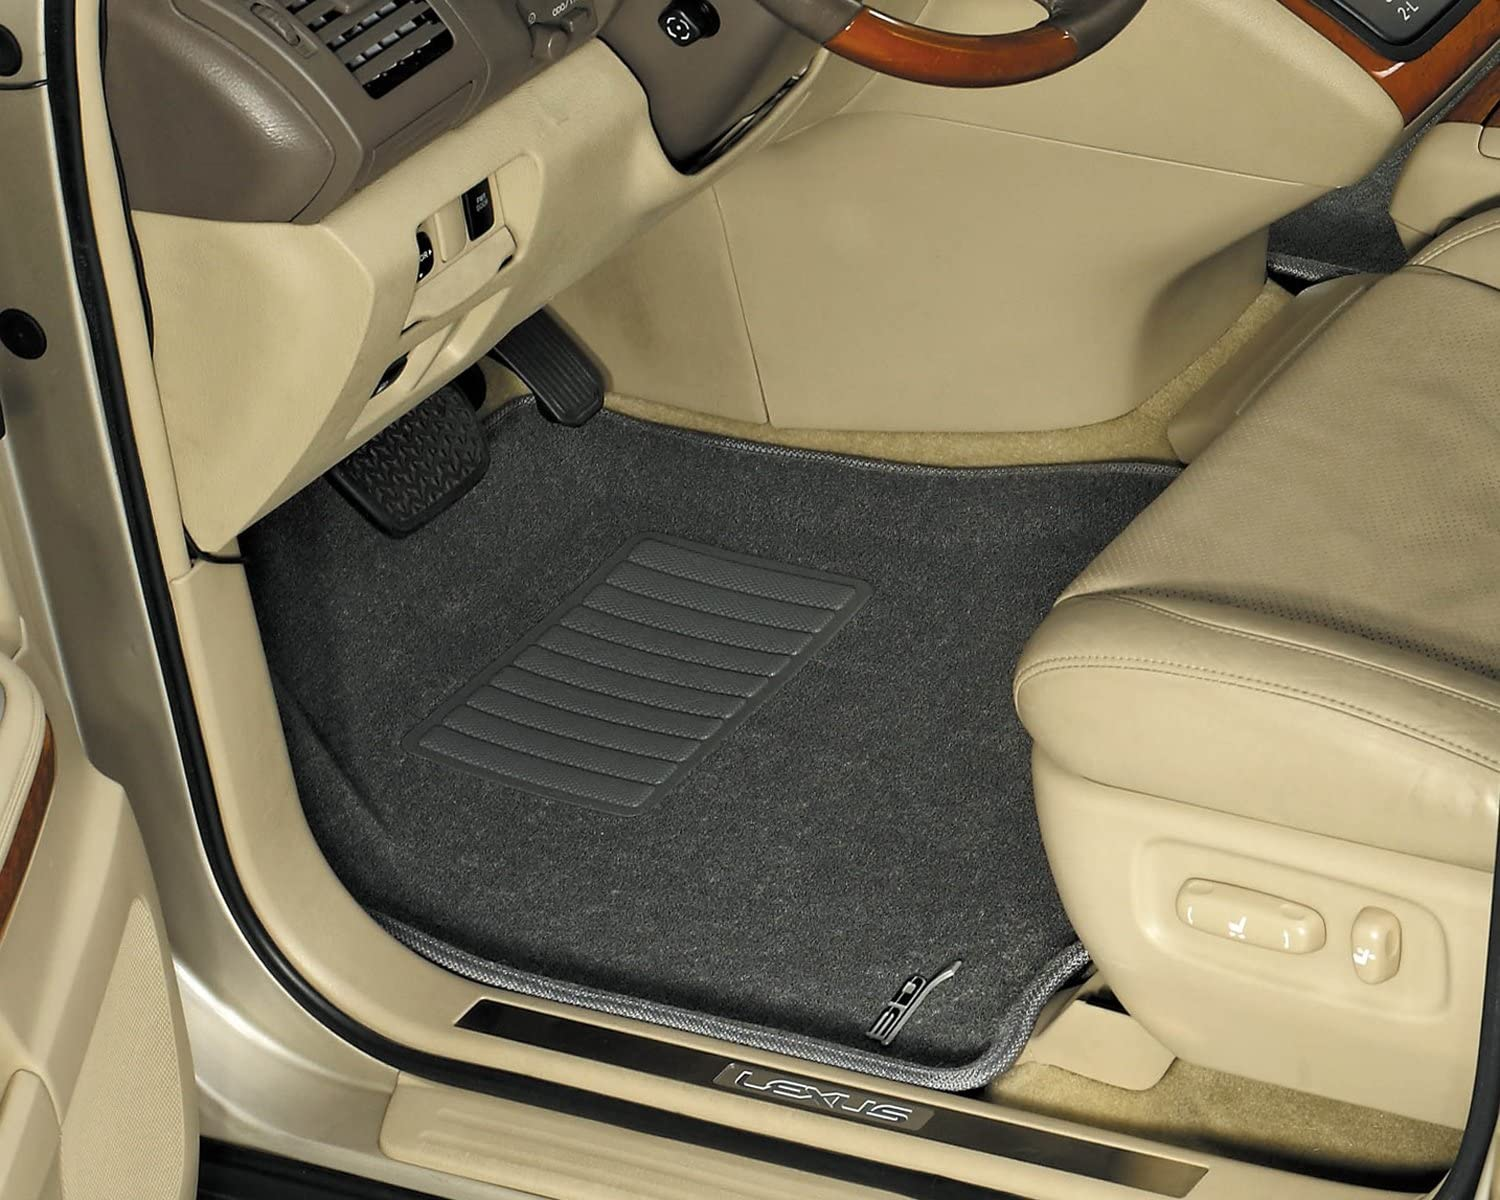 3D MAXpider Custom Fit All-Weather Floor Mat for Select Acura MDX Models Classic Carpet